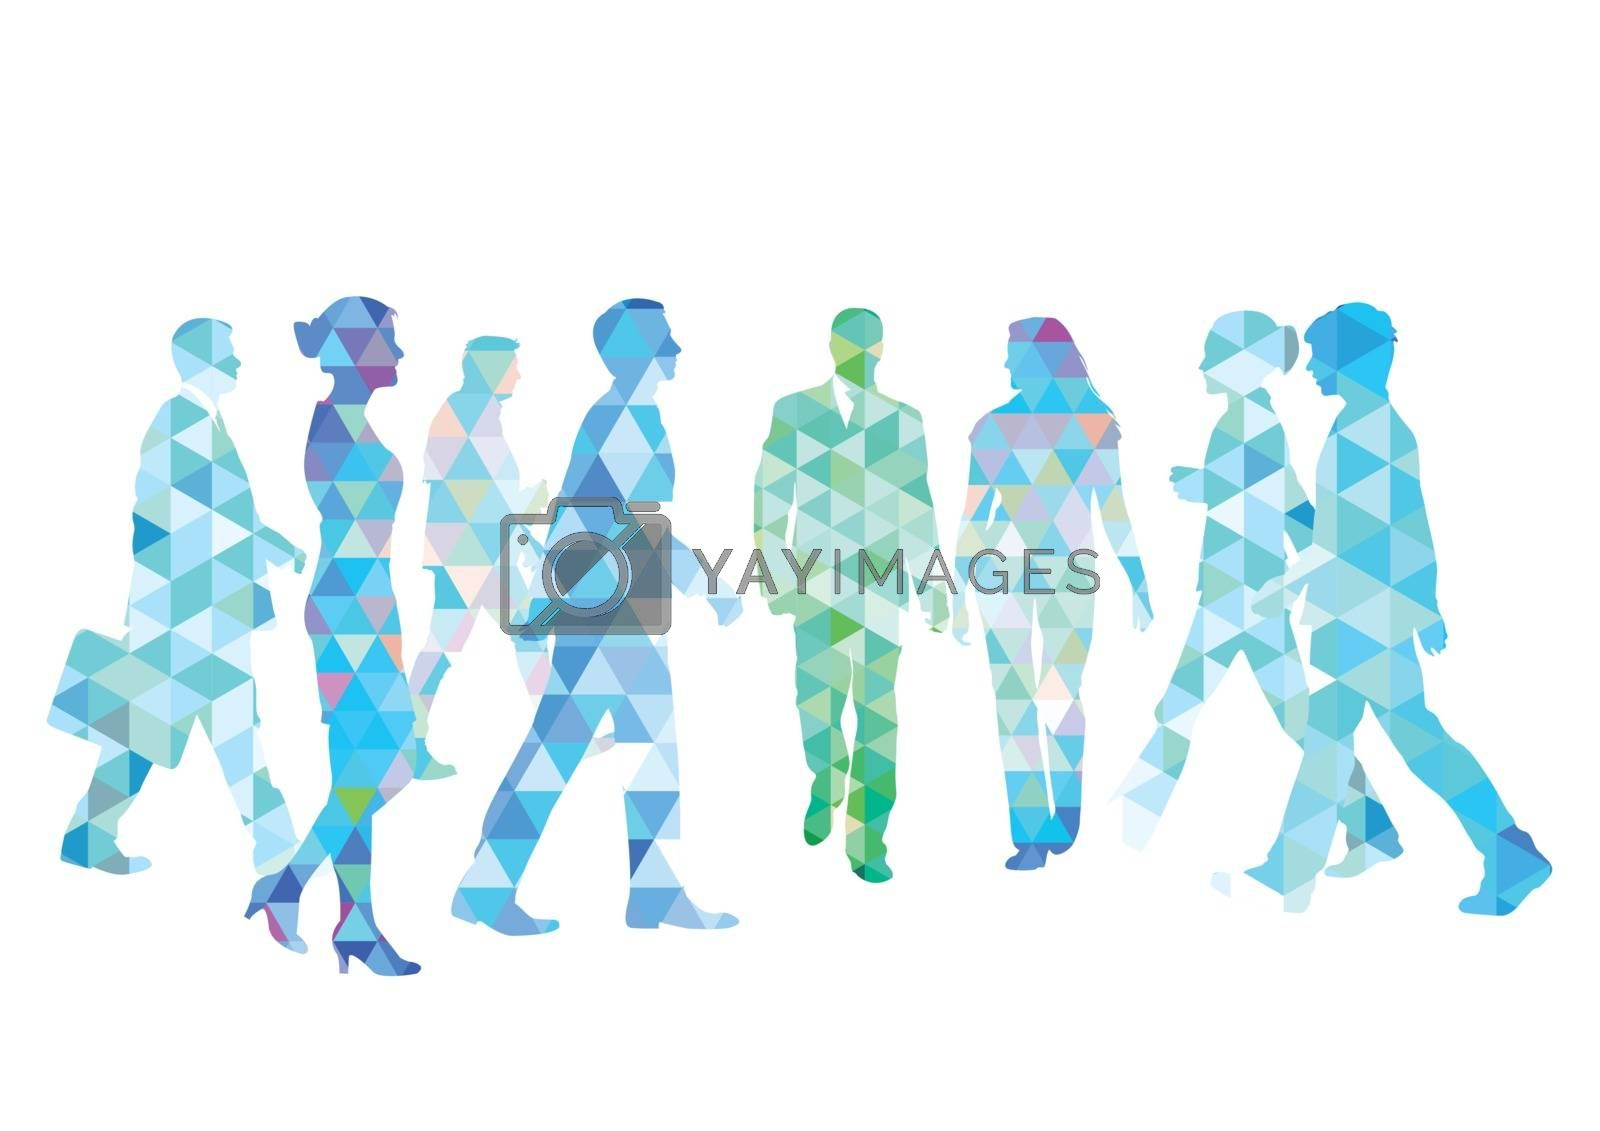 Group of people go for a walk, illustration